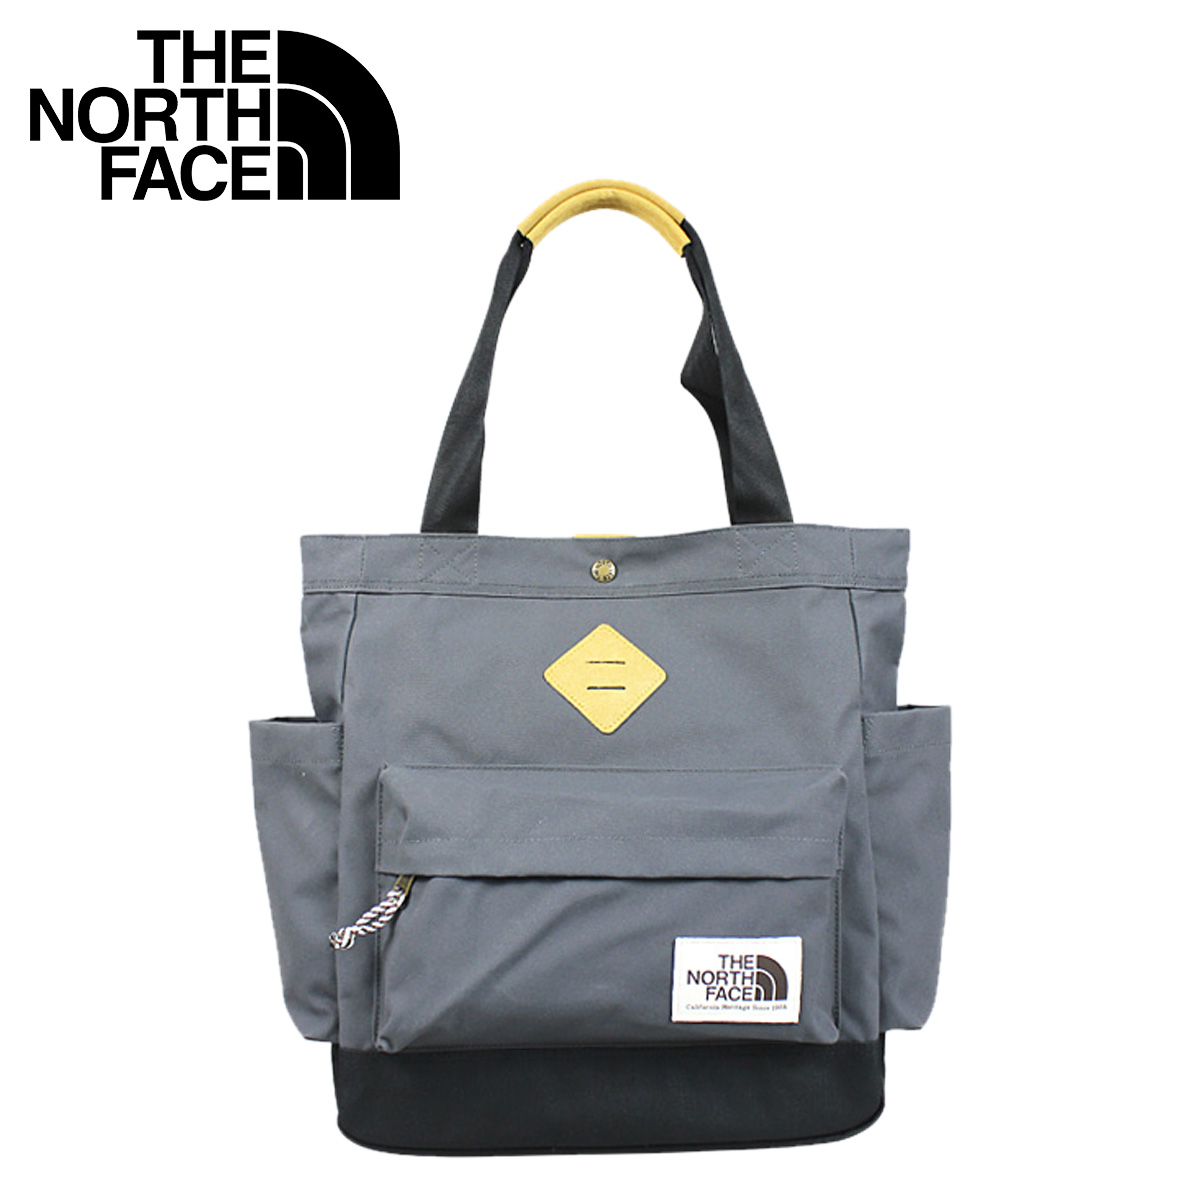 Allsports Rakuten Global Market The North Face Tote Bag Men S 2017 New C086 Grey Four Point 8 25 In Stock Regular